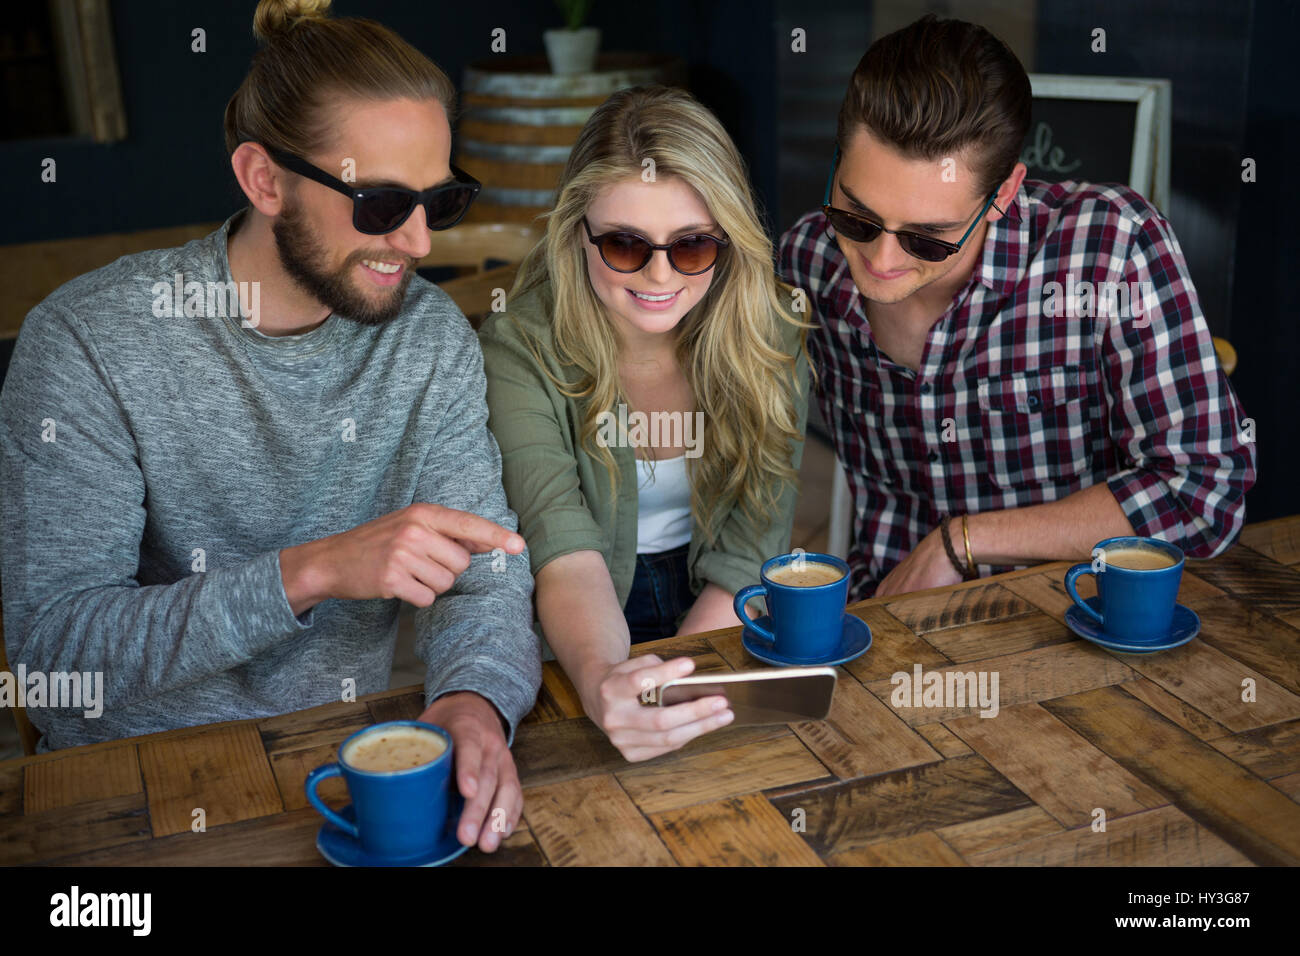 Smiling young friends using smart phone at table in cafe - Stock Image